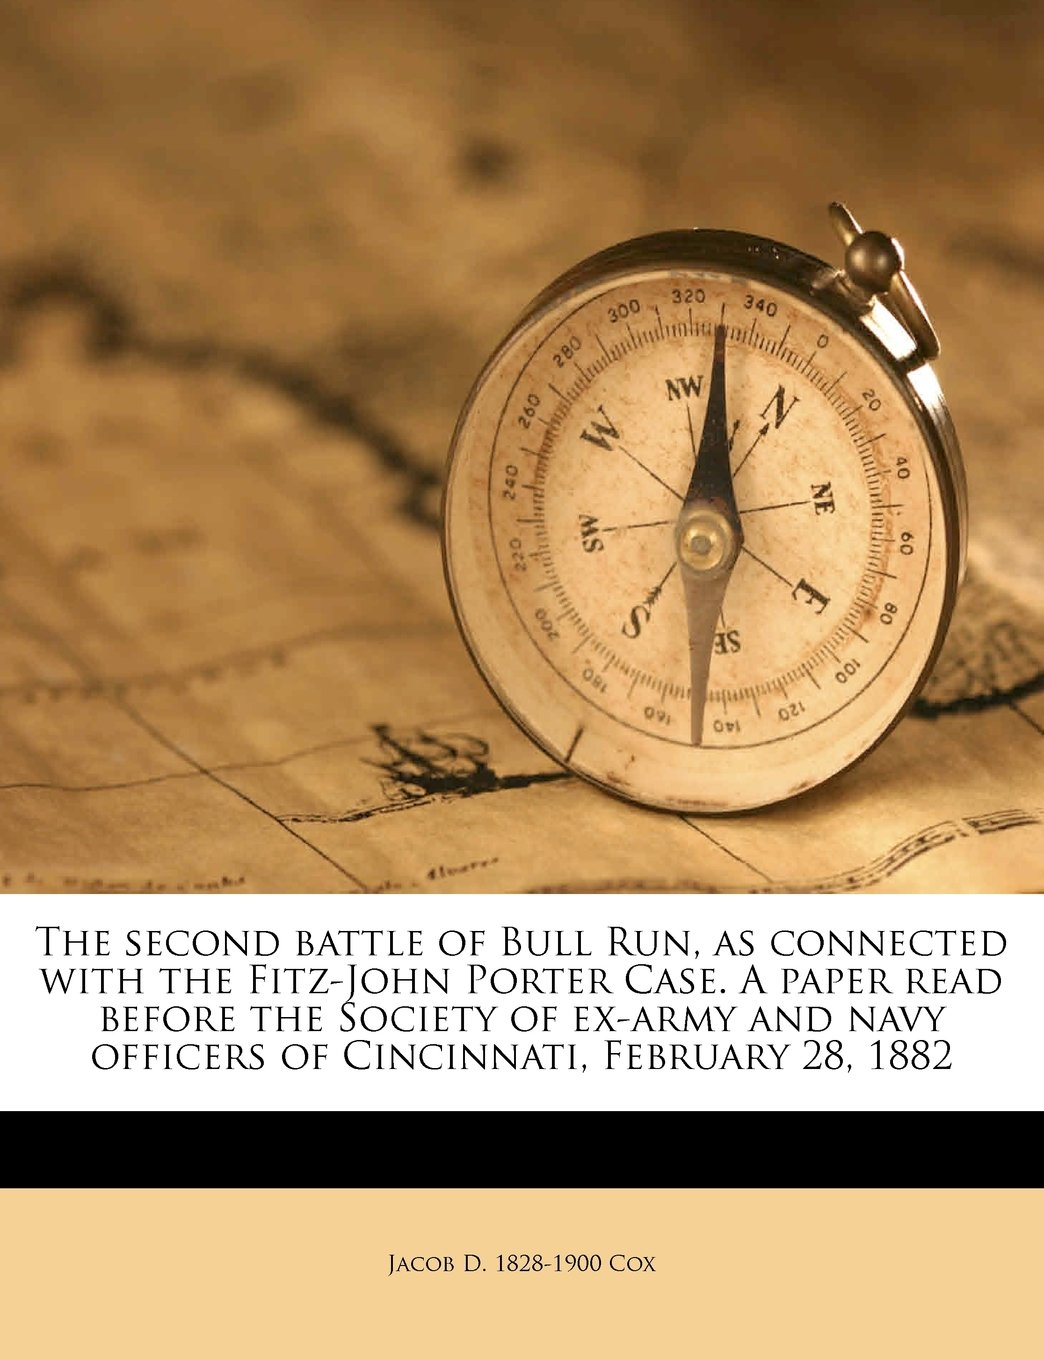 Download The second battle of Bull Run, as connected with the Fitz-John Porter Case. A paper read before the Society of ex-army and navy officers of Cincinnati, February 28, 1882 ebook